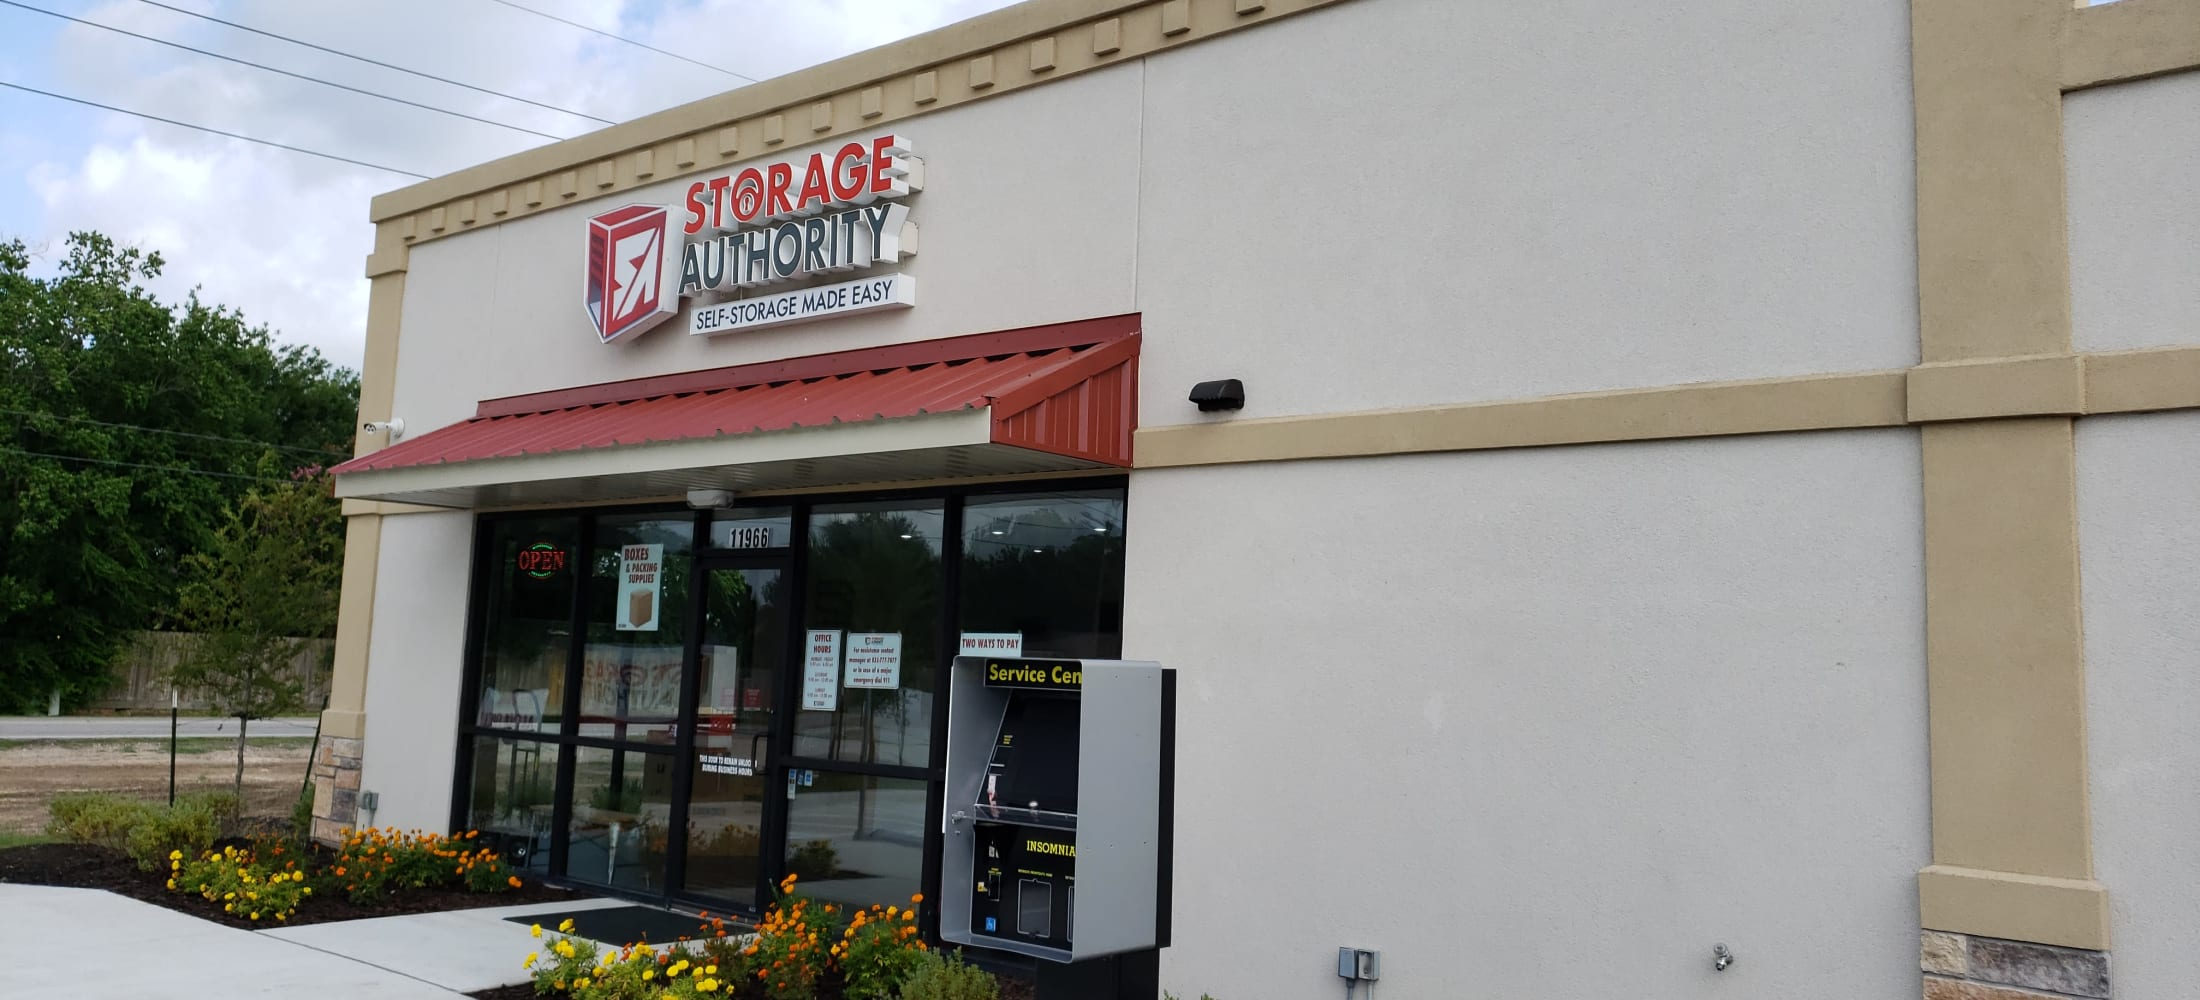 Exterior view of Storage Authority Walters Rd in Houston, TX